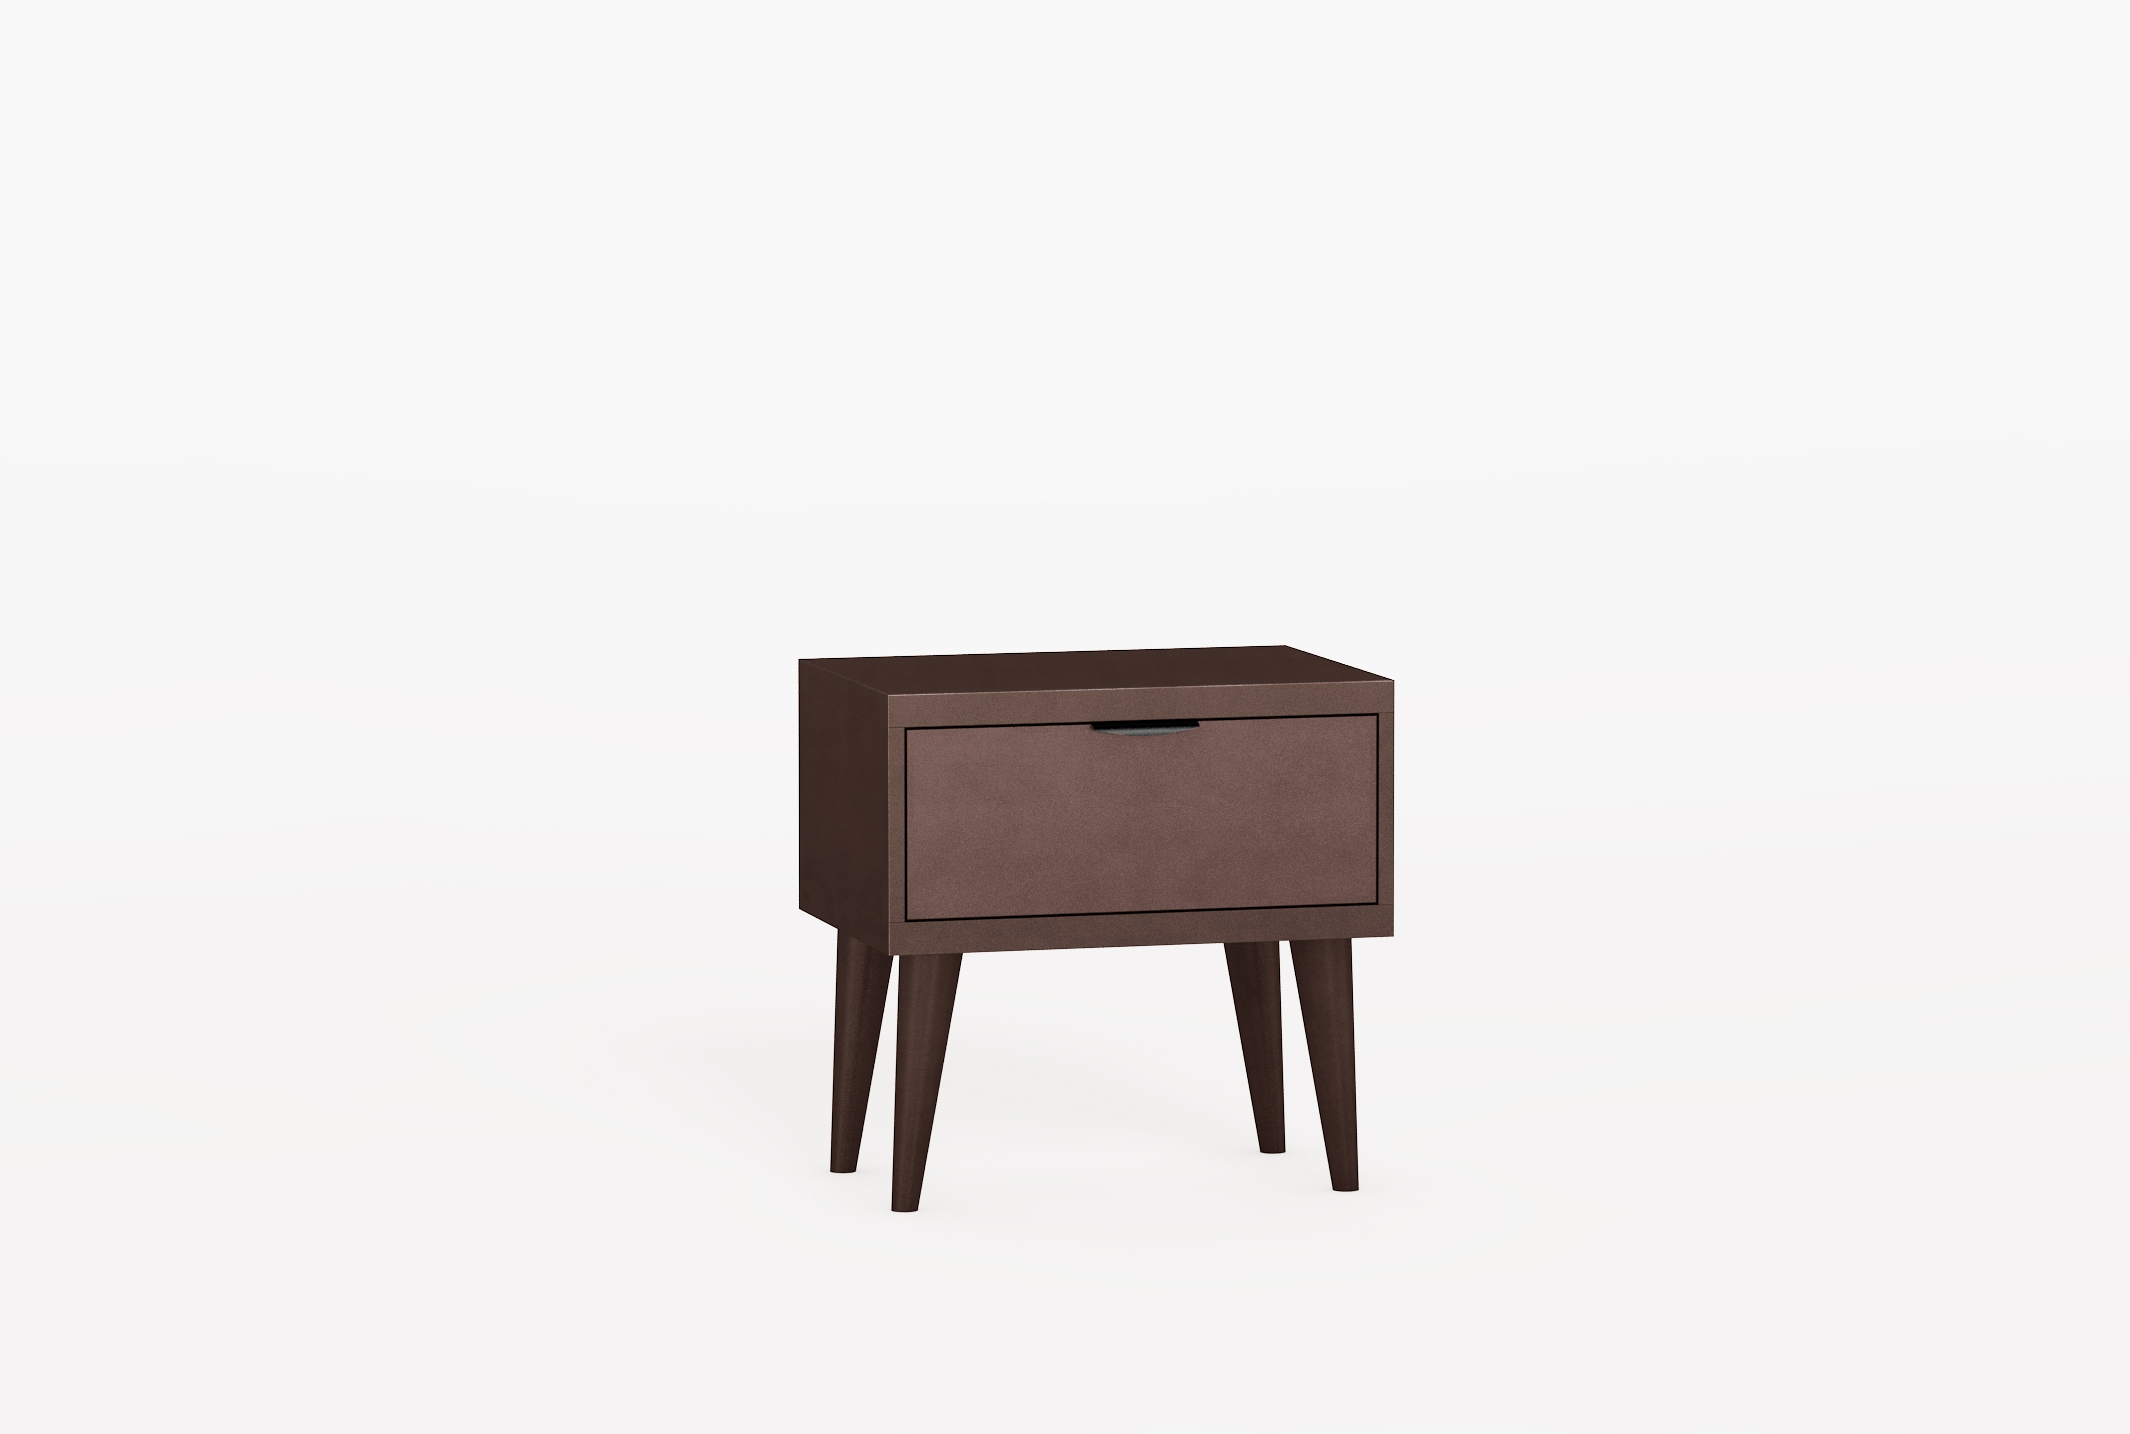 Icon Furniture Sutton Nightstand Long Legs